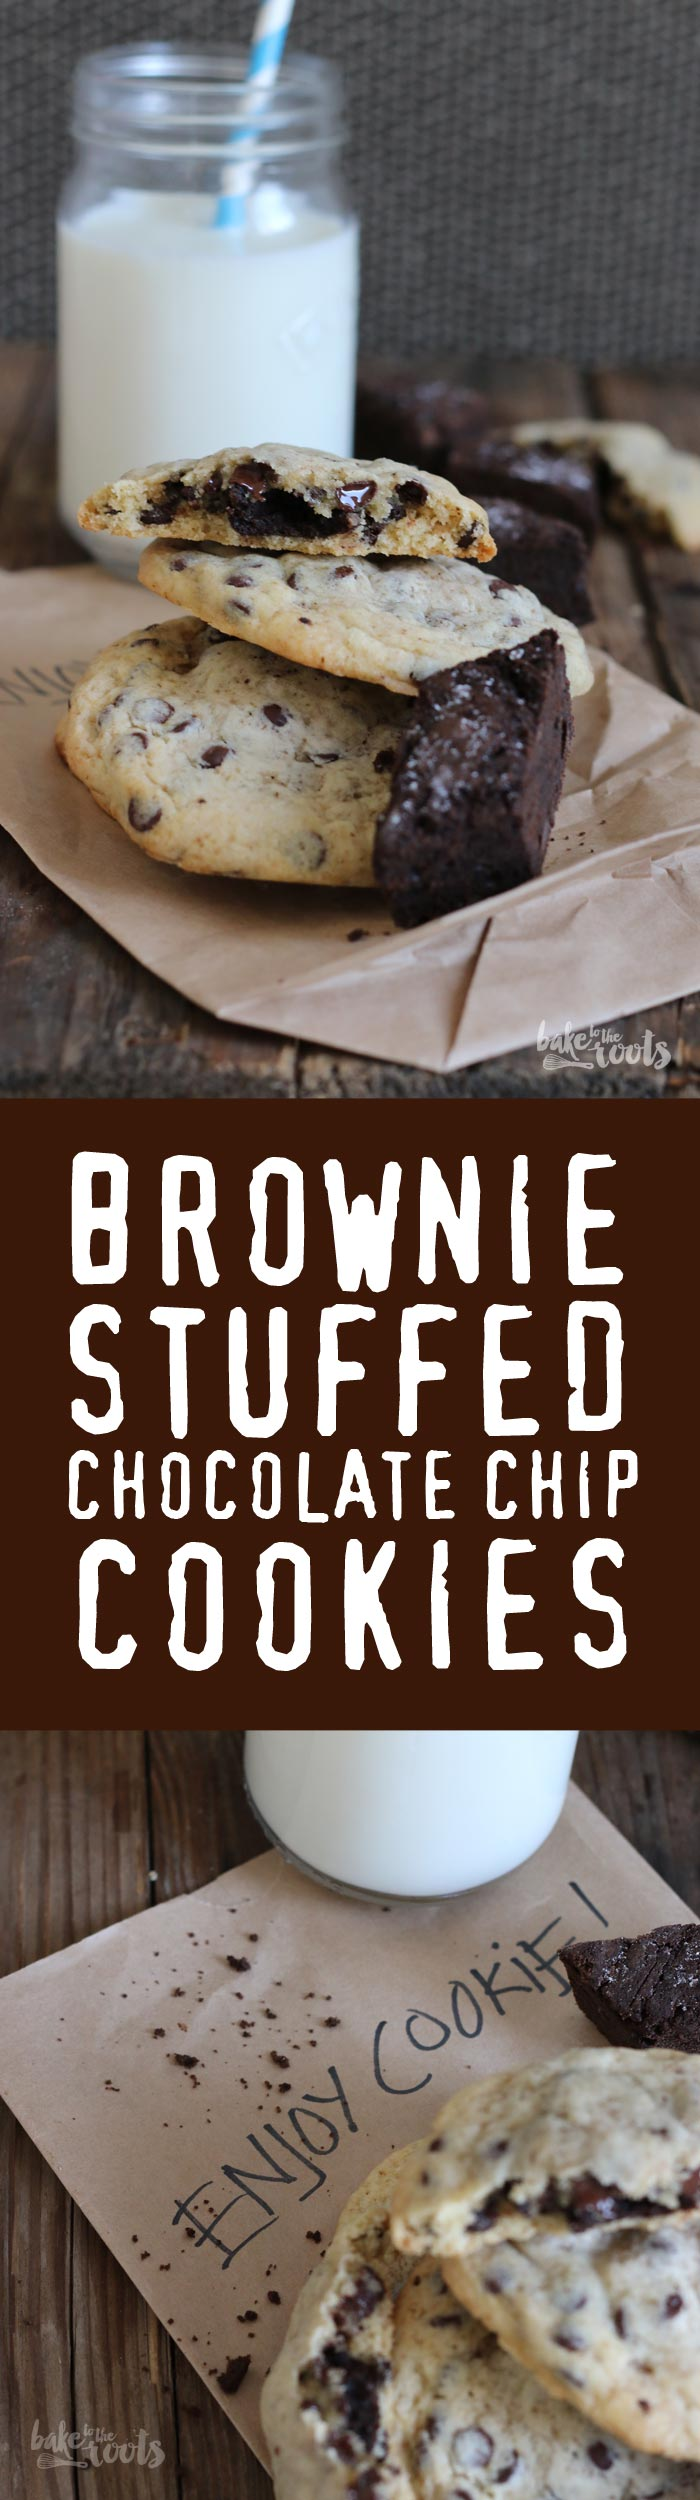 Cookie meets brownie - You can call them Brookies or Cookiebros - or plain Brownie Stuffed Chocolate Chip Cookies | Bake to the roots